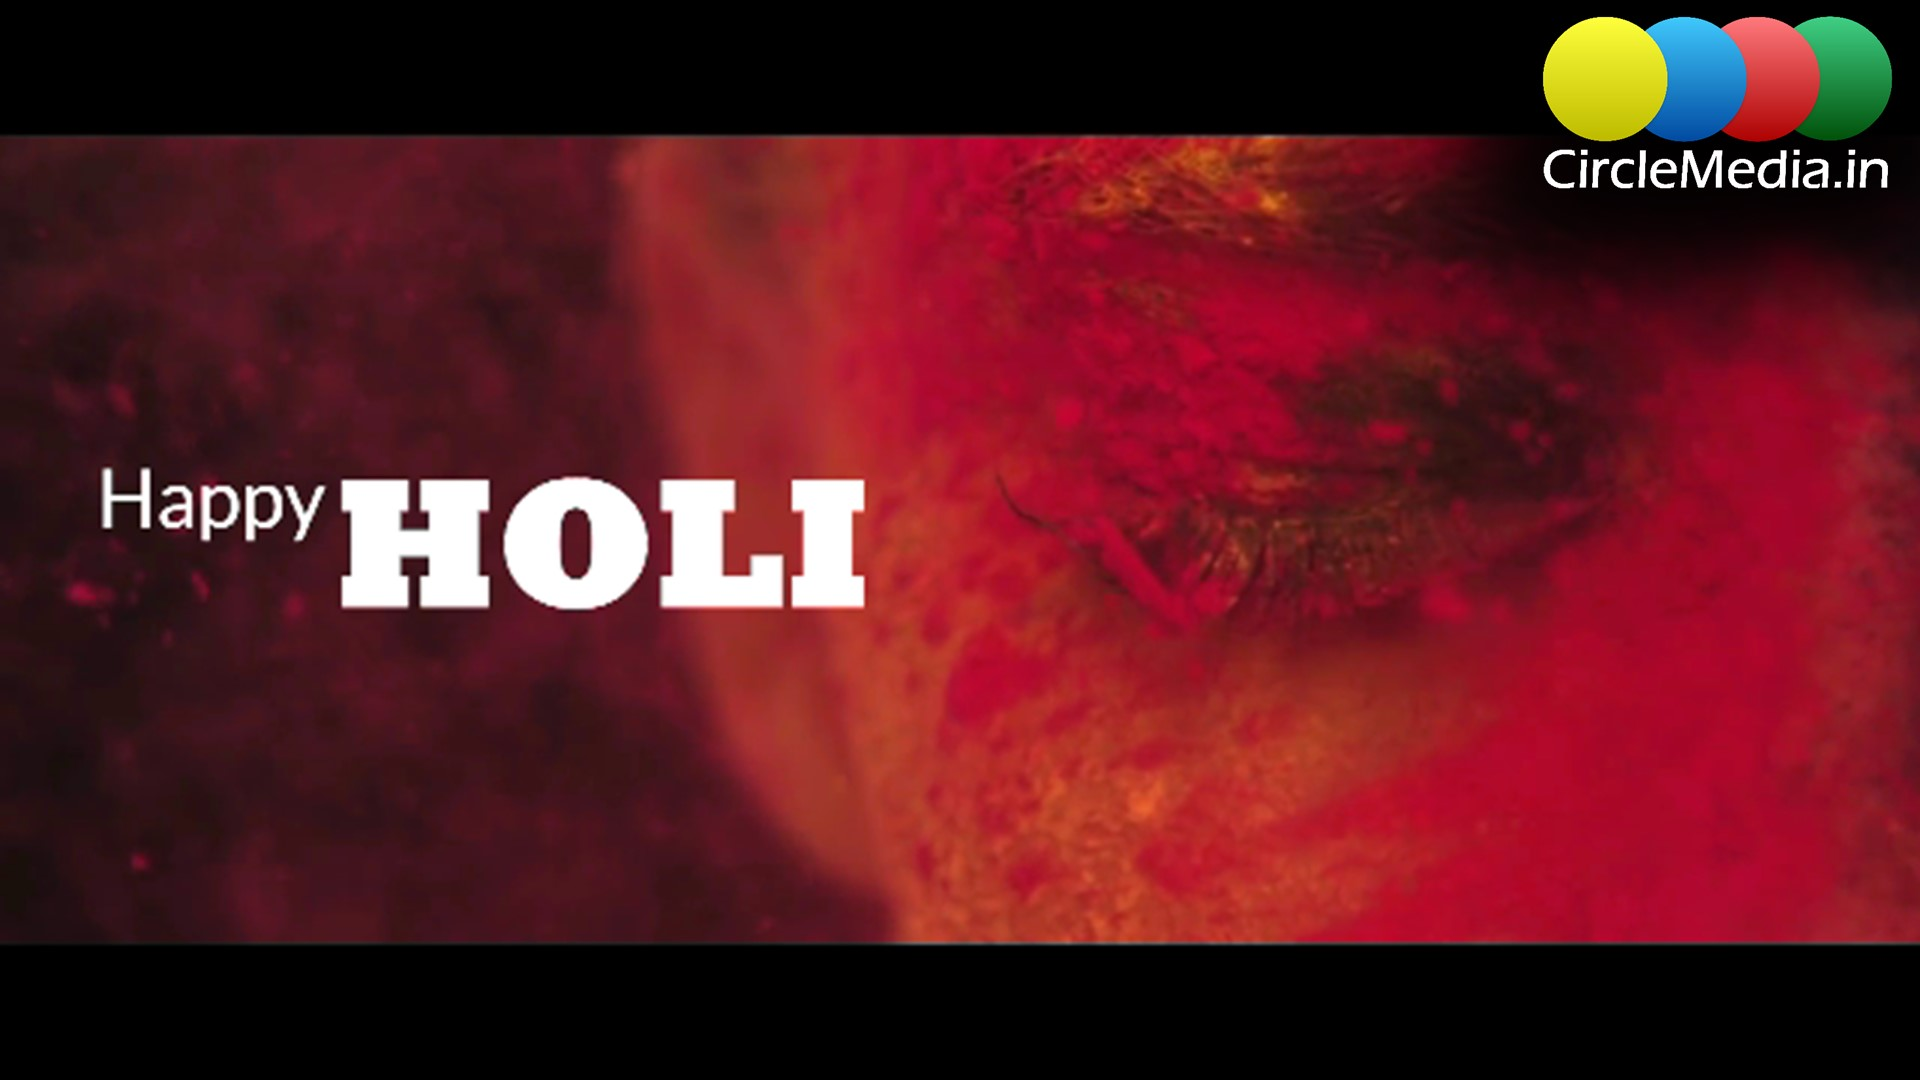 Happy HOLI | CircleMedia.in